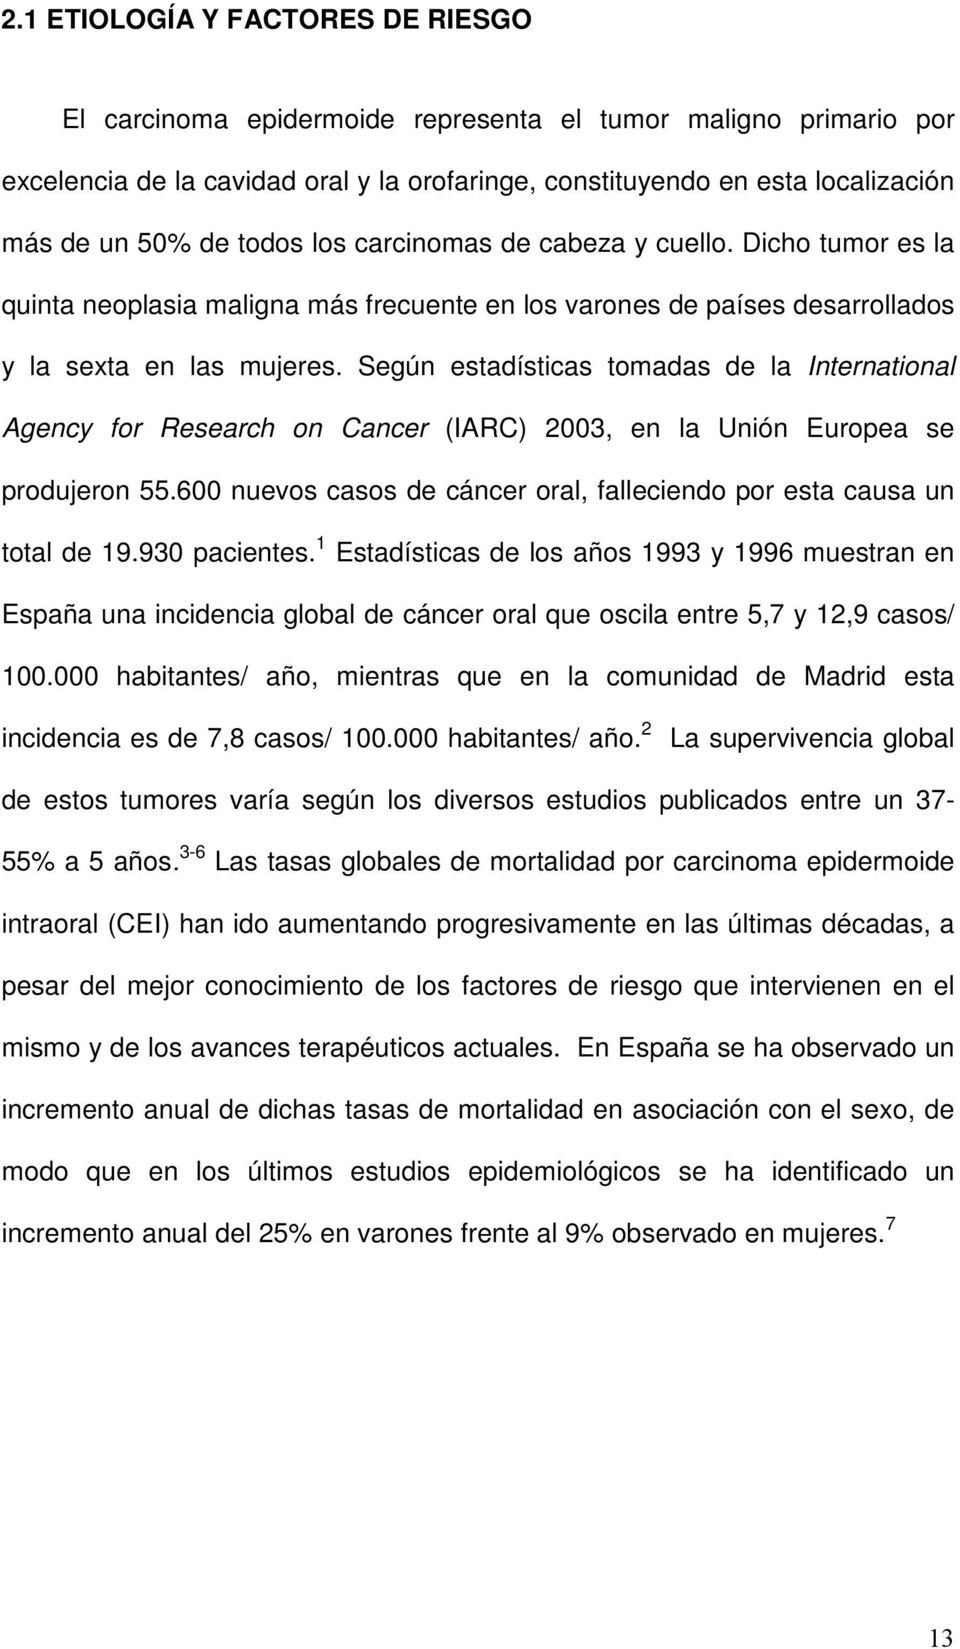 Según estadísticas tomadas de la International Agency for Research on Cancer (IARC) 2003, en la Unión Europea se produjeron 55.